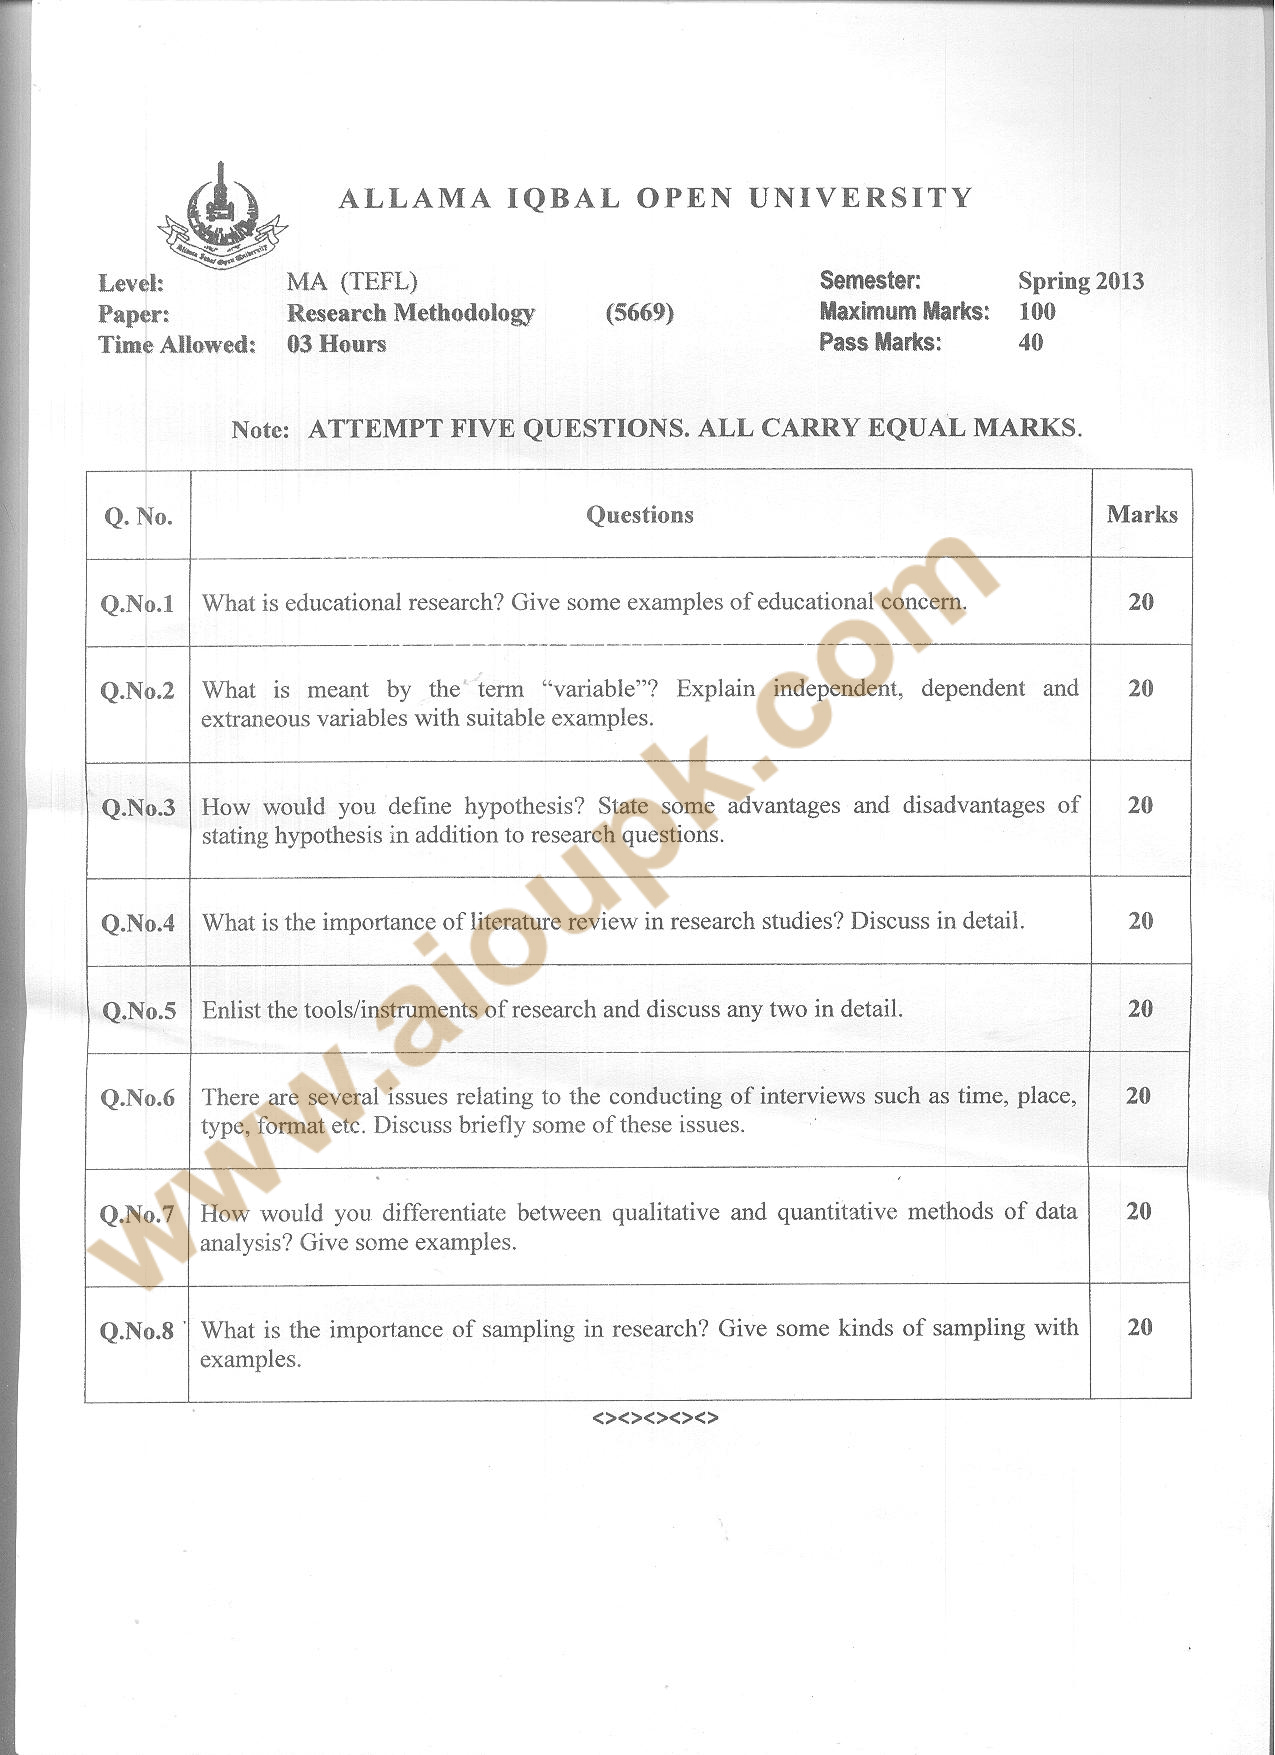 AIOU Past Paper Code 5669 Course : Research Methodology